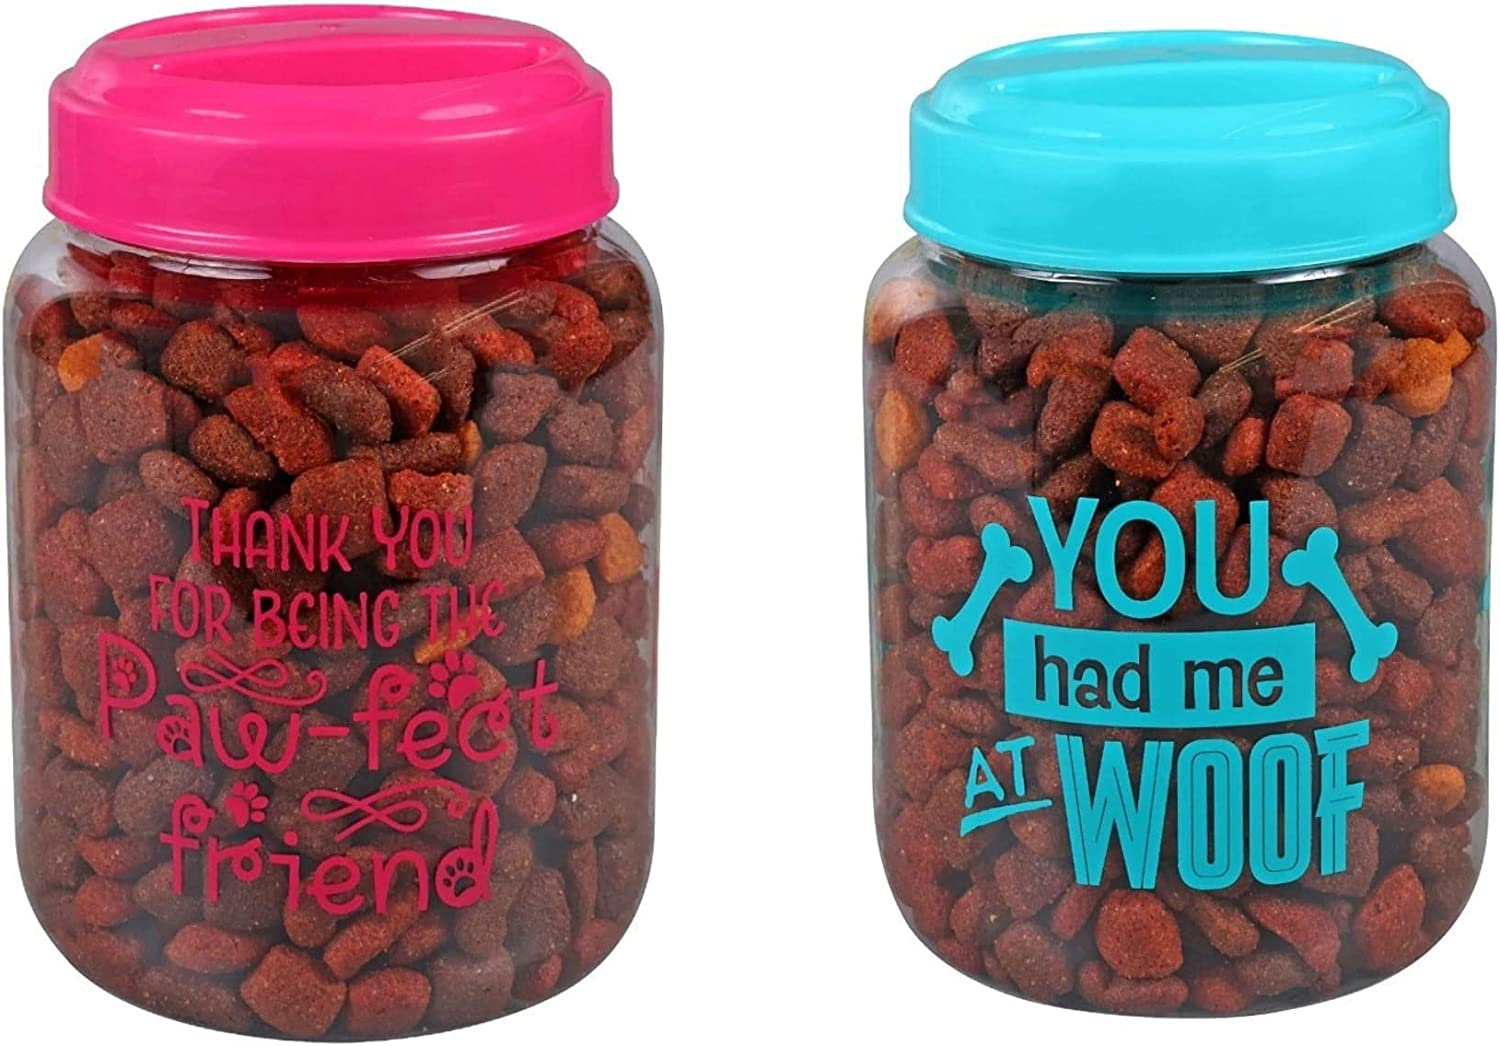 BPA-Free Plastic Airtight Dog Cat Pet Treat & Food Storage Containers Canisters Pink & Blue Thank You for Being The Paw FECT Friend You had me at Woof Slogans (Set of 2)